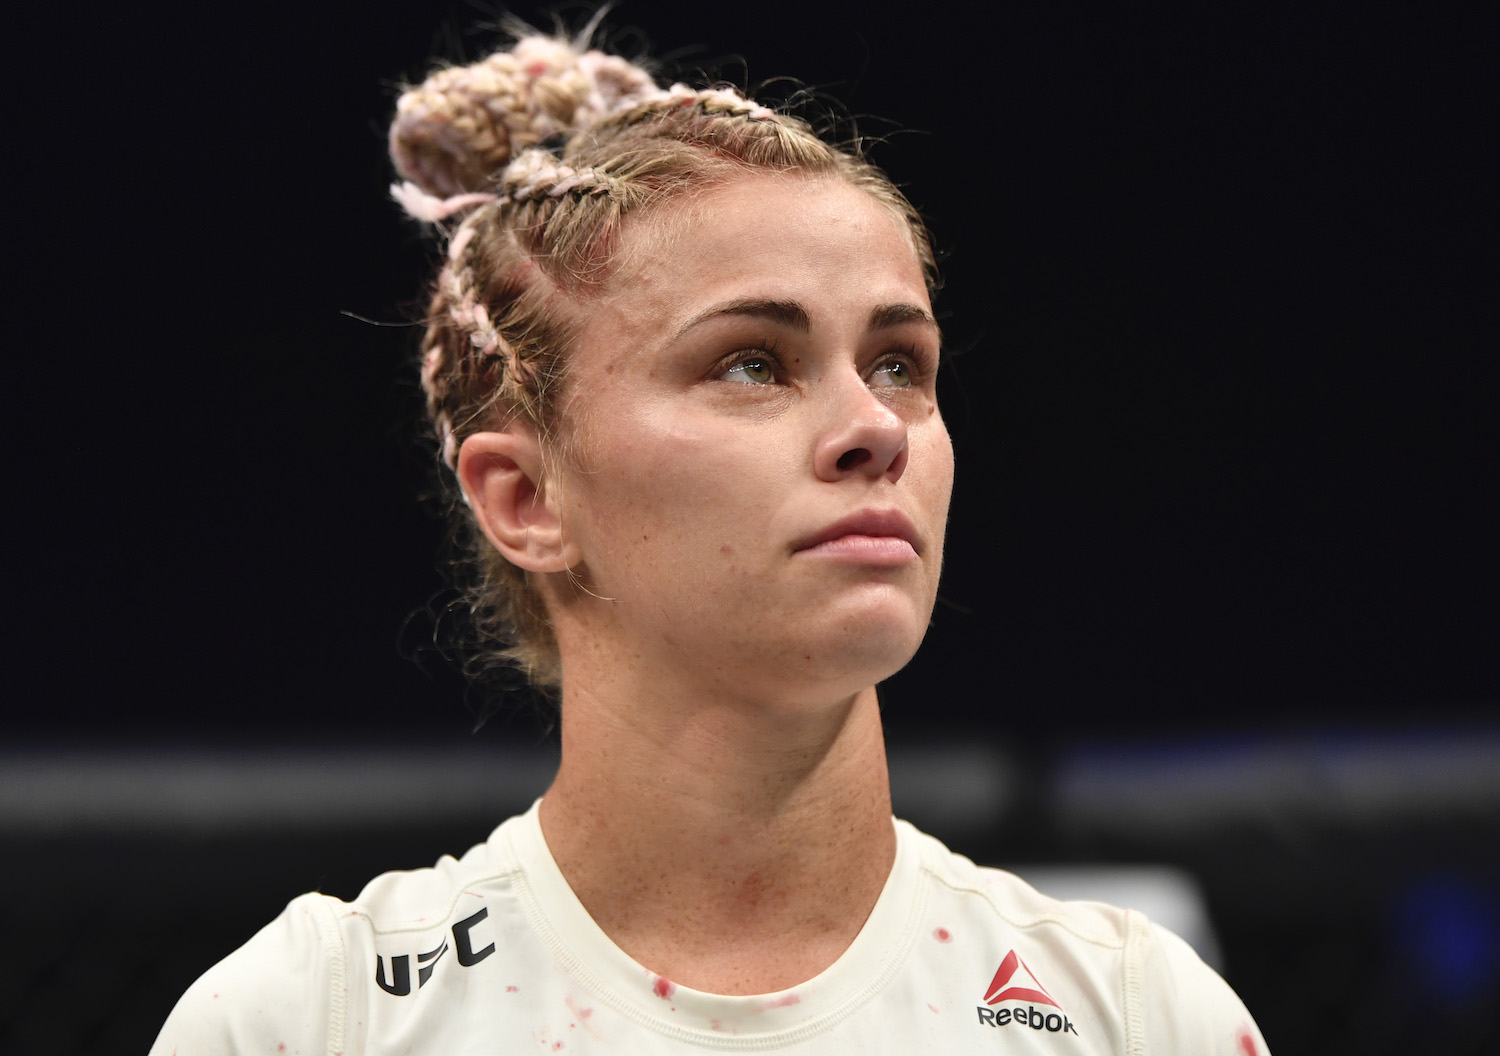 Paige VanZant Signs New $1 Million Deal to Fight and It's Not With UFC or in MMA